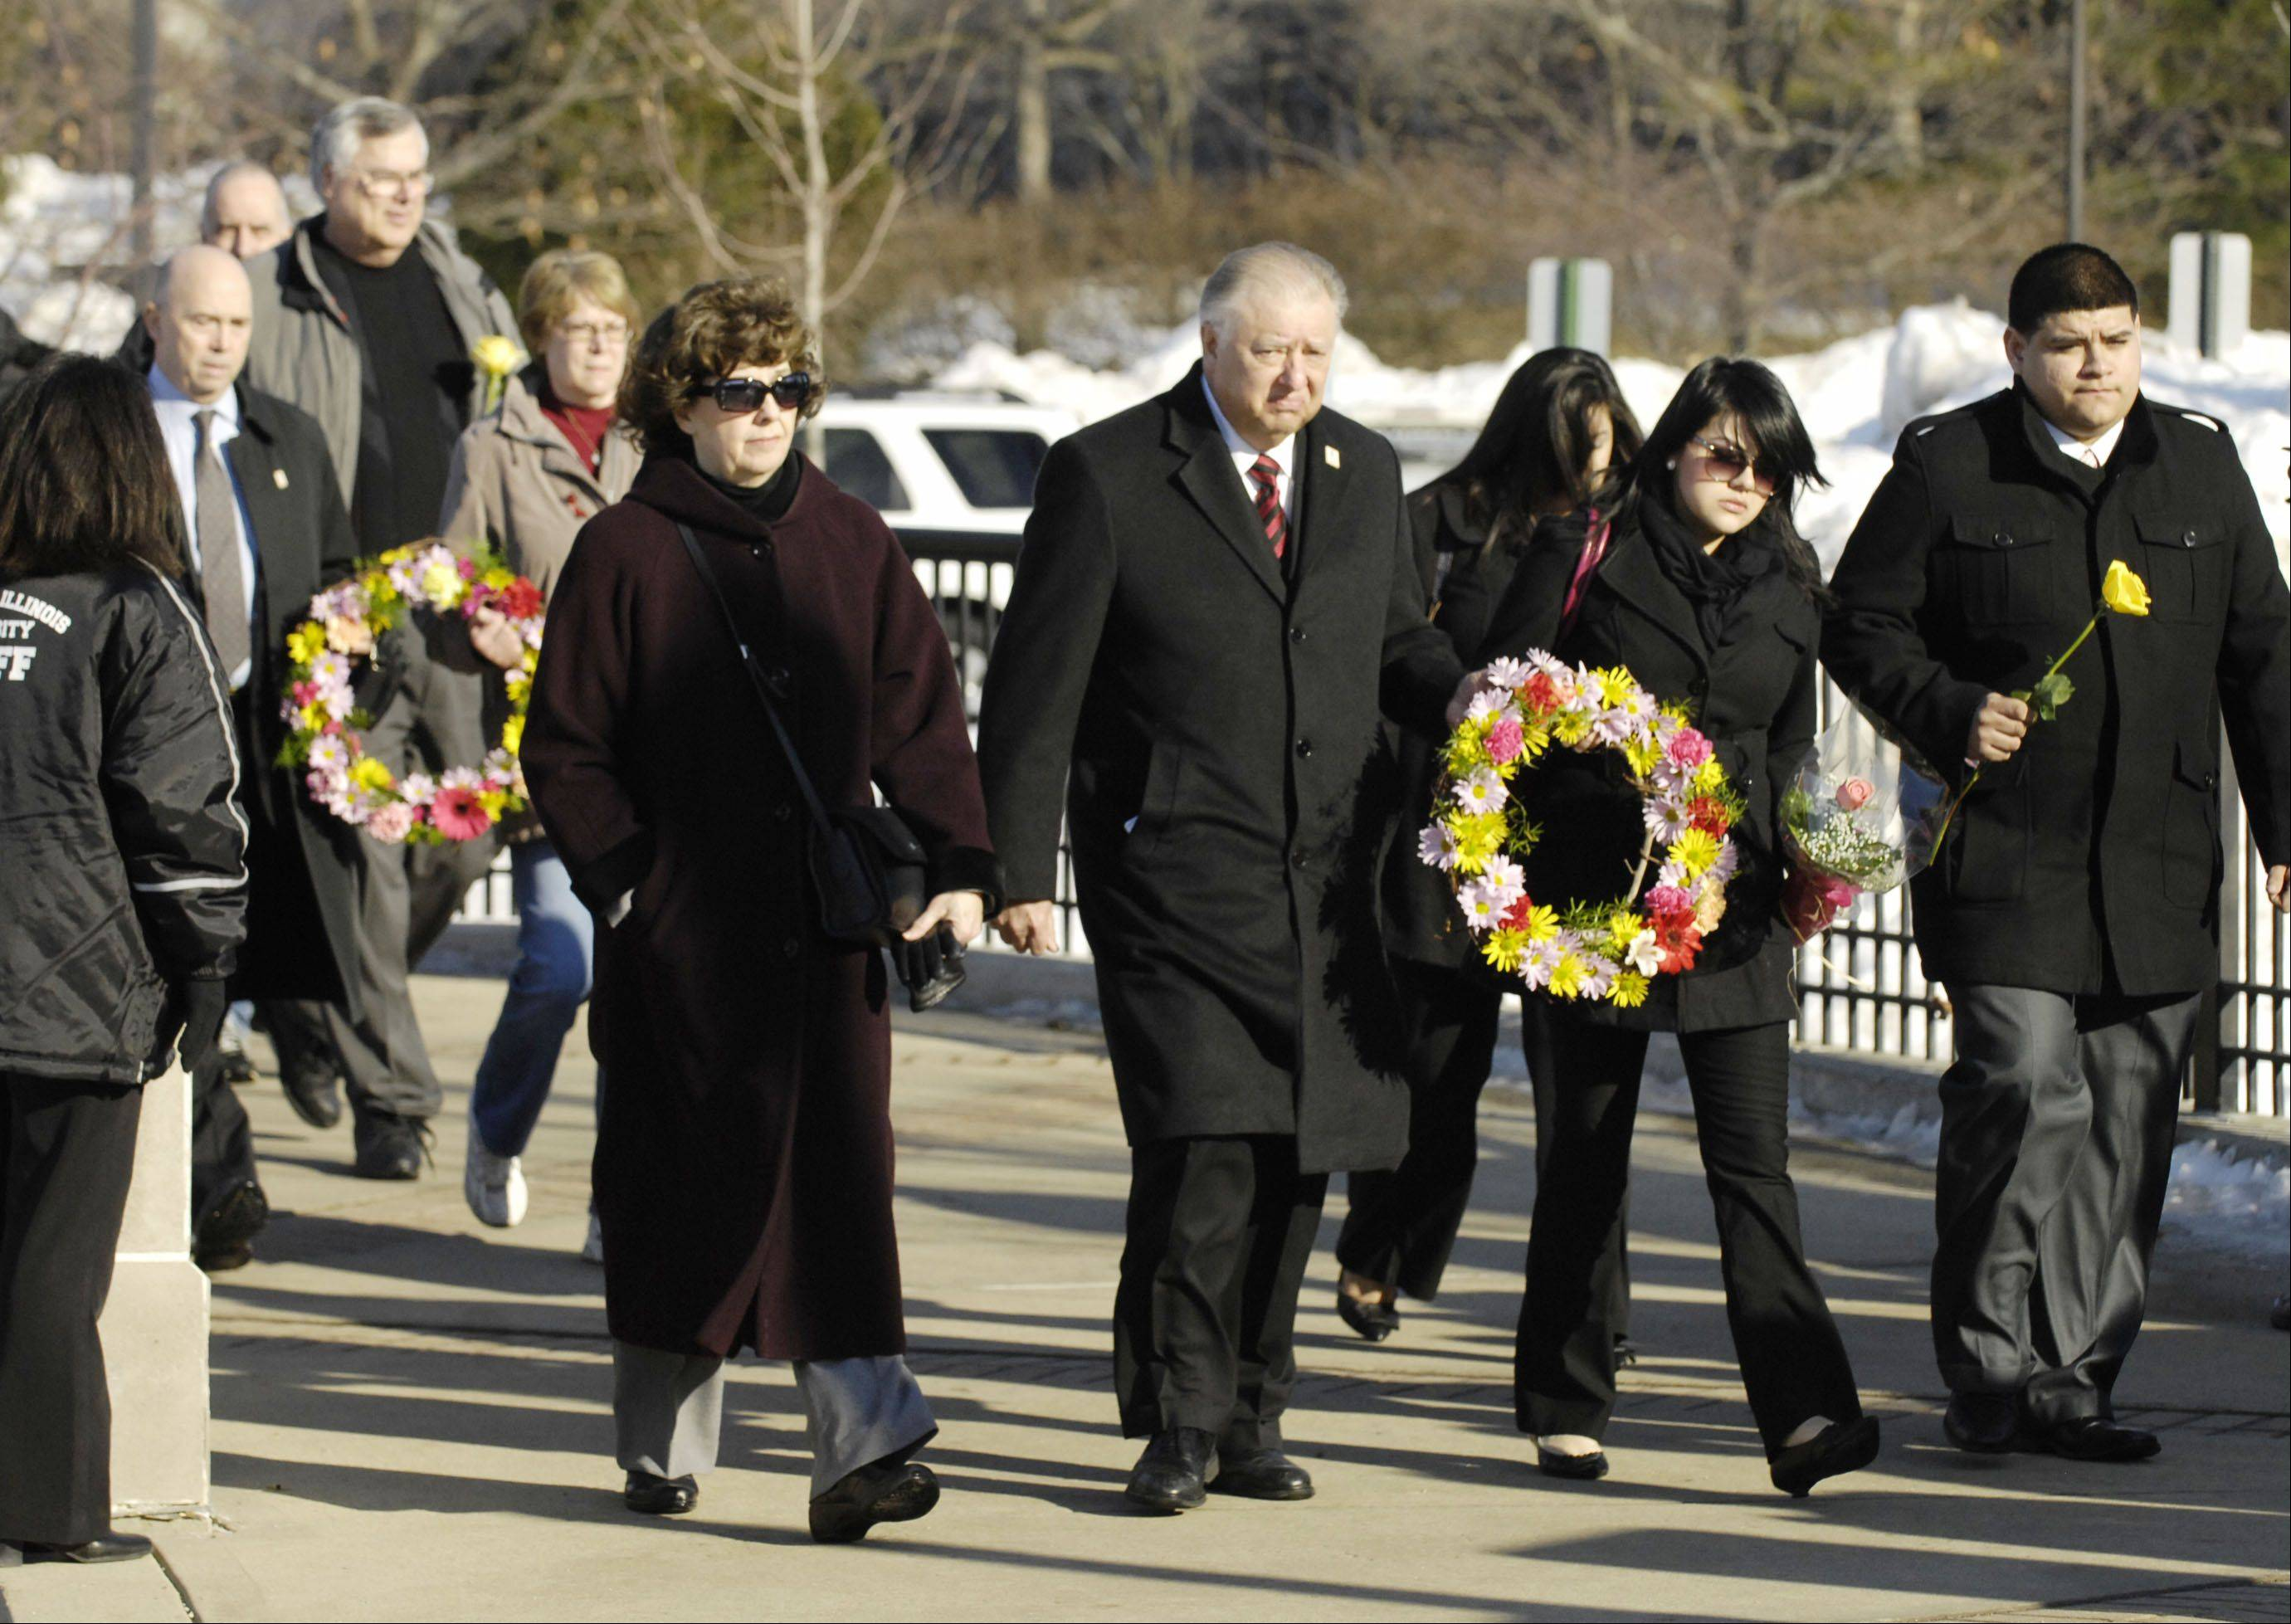 NIU President John G. Peters prepares to place a wreath in 2011 in memory of the five students killed on Feb. 14, 2008. A memorial wreath-laying is scheduled for 3 p.m. today.